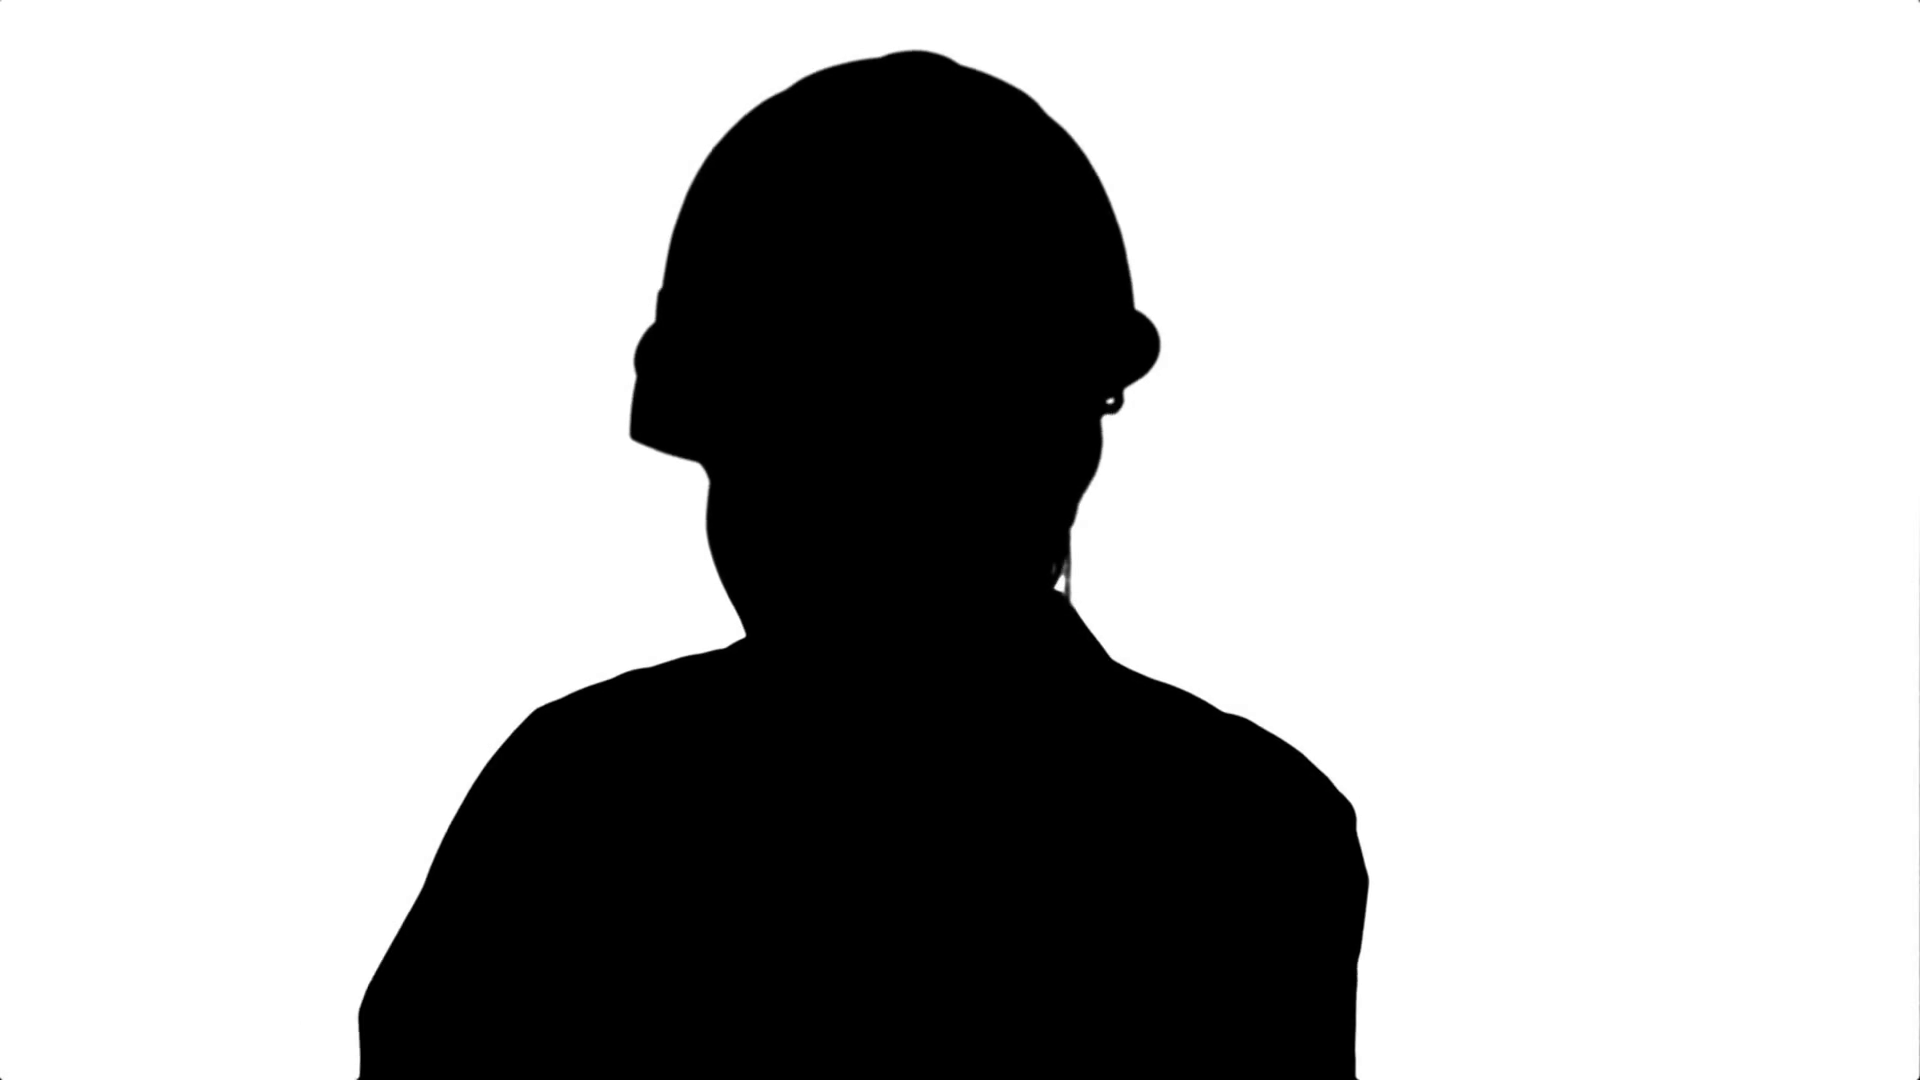 1920x1080 Silhouette Angry Woman Construction Worker In A Hardhat Shouting